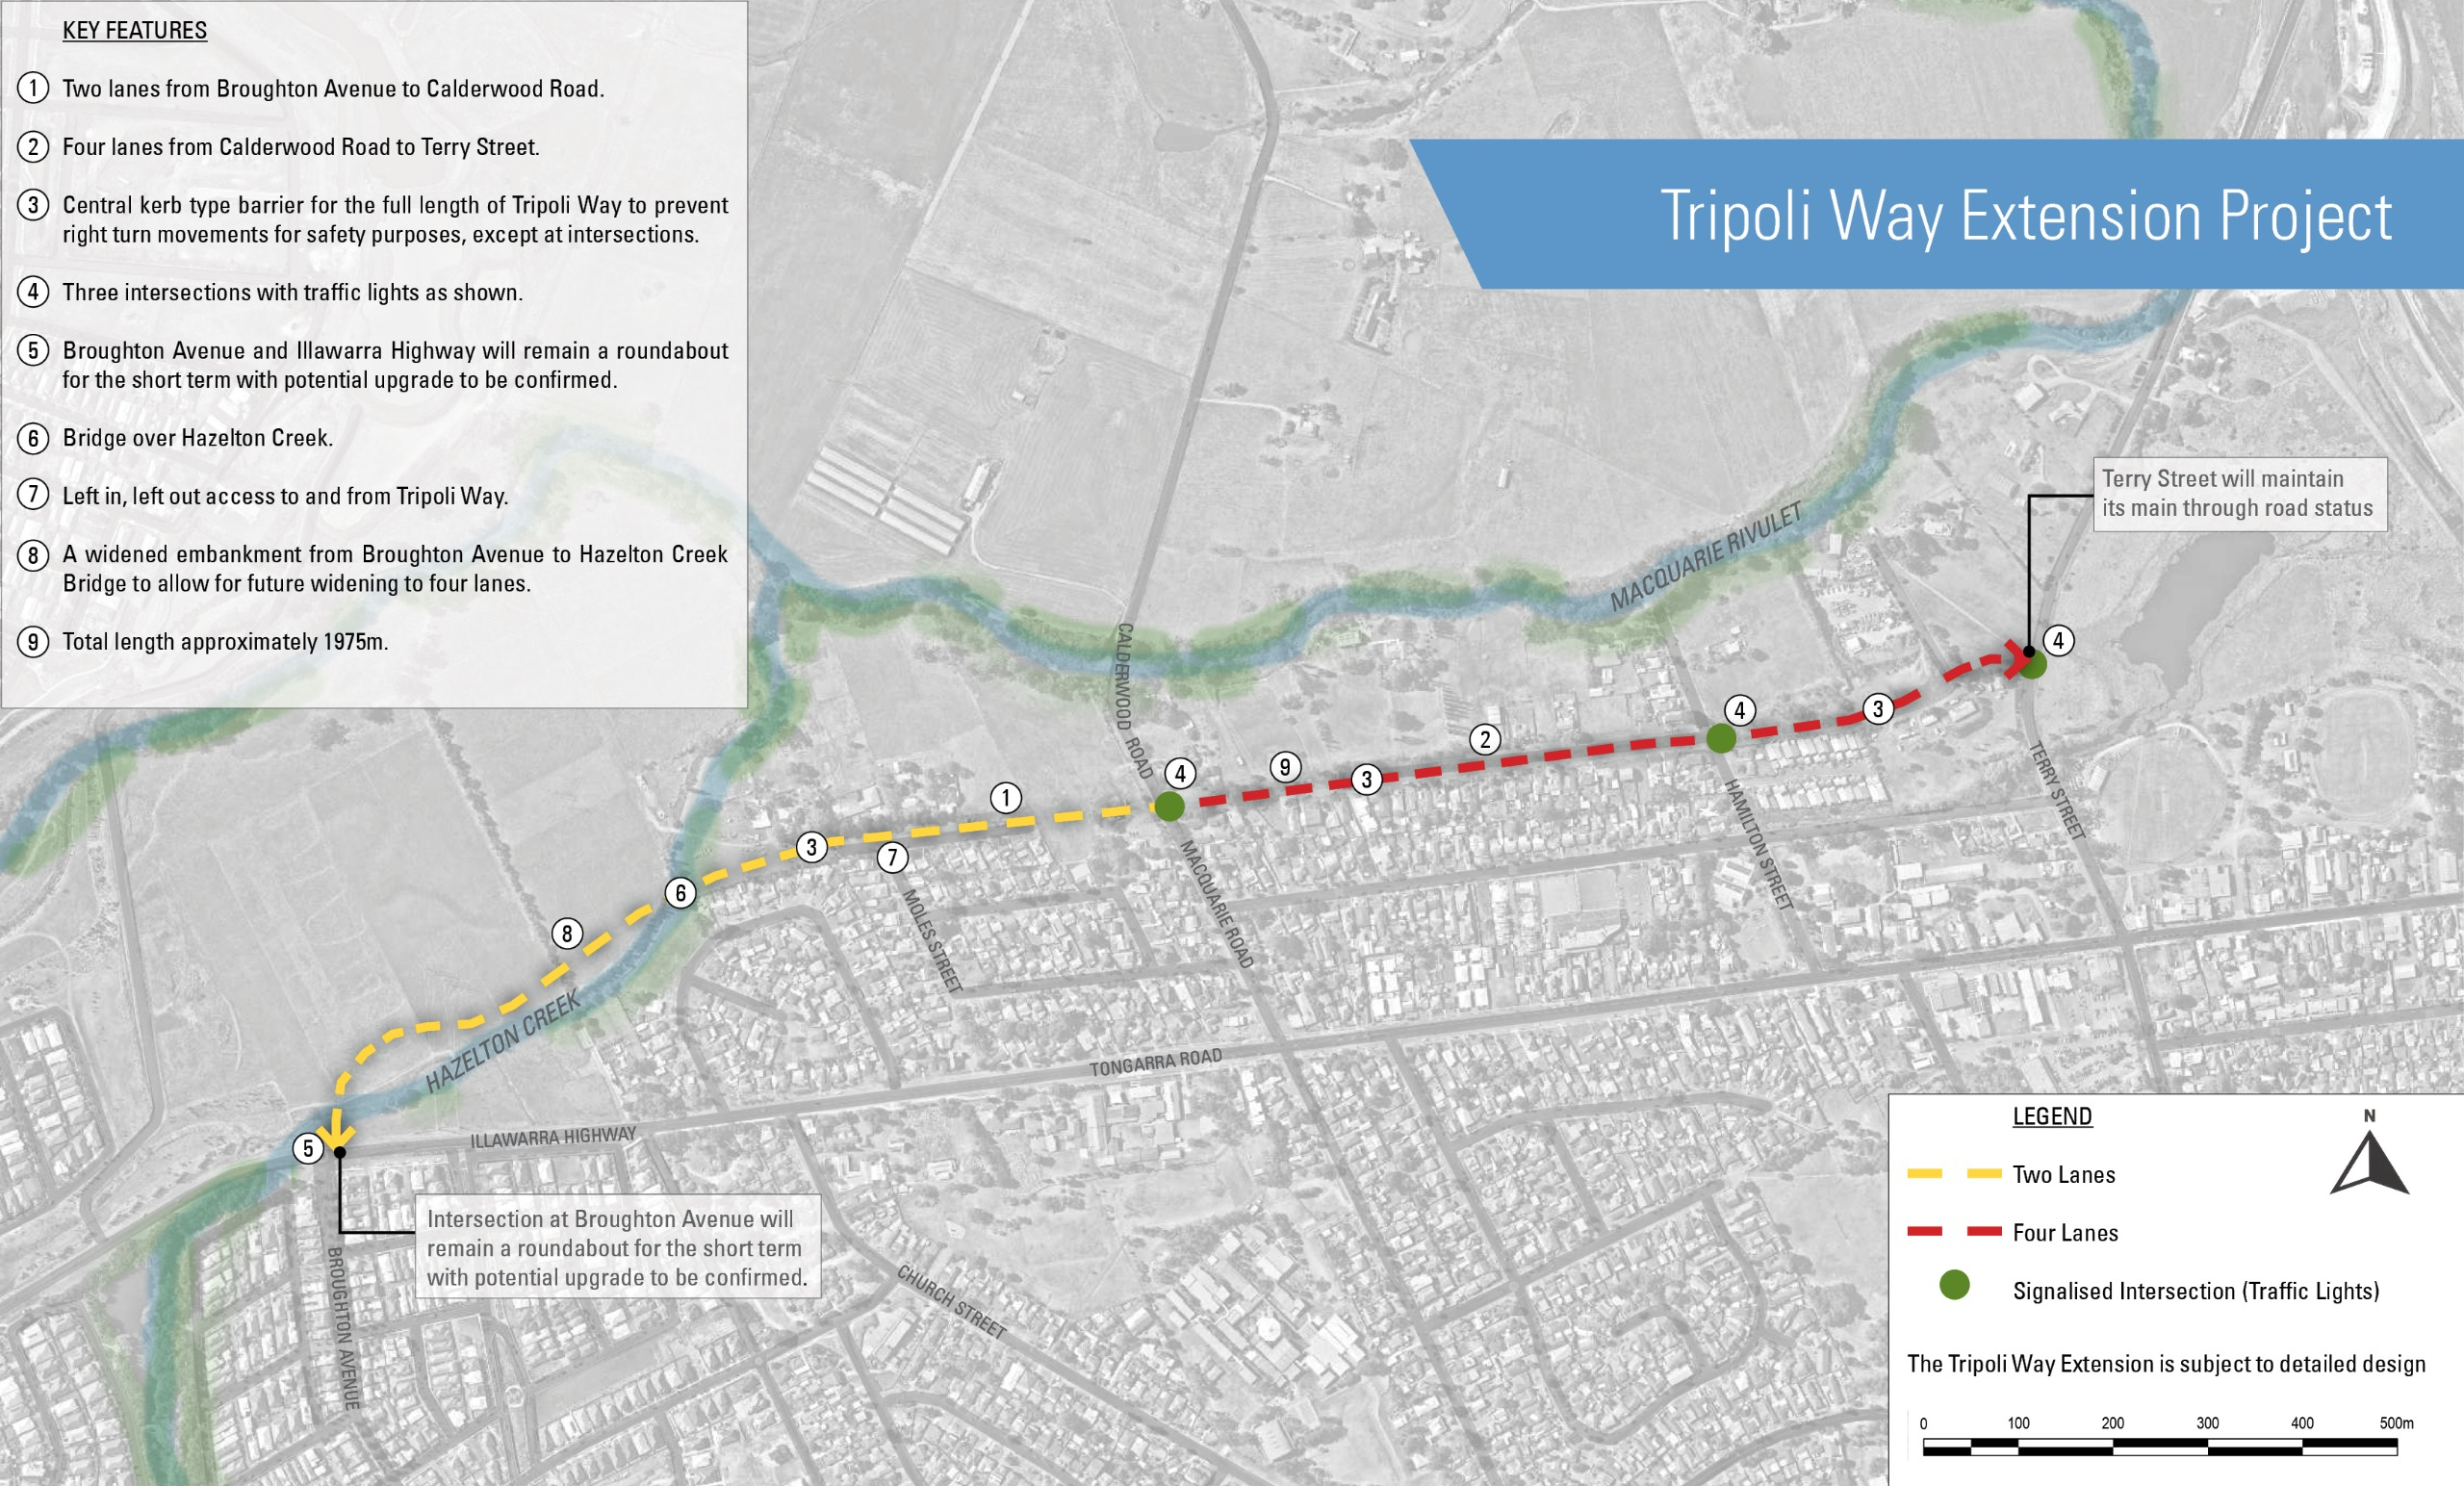 Proposed Tripoli Way Extension